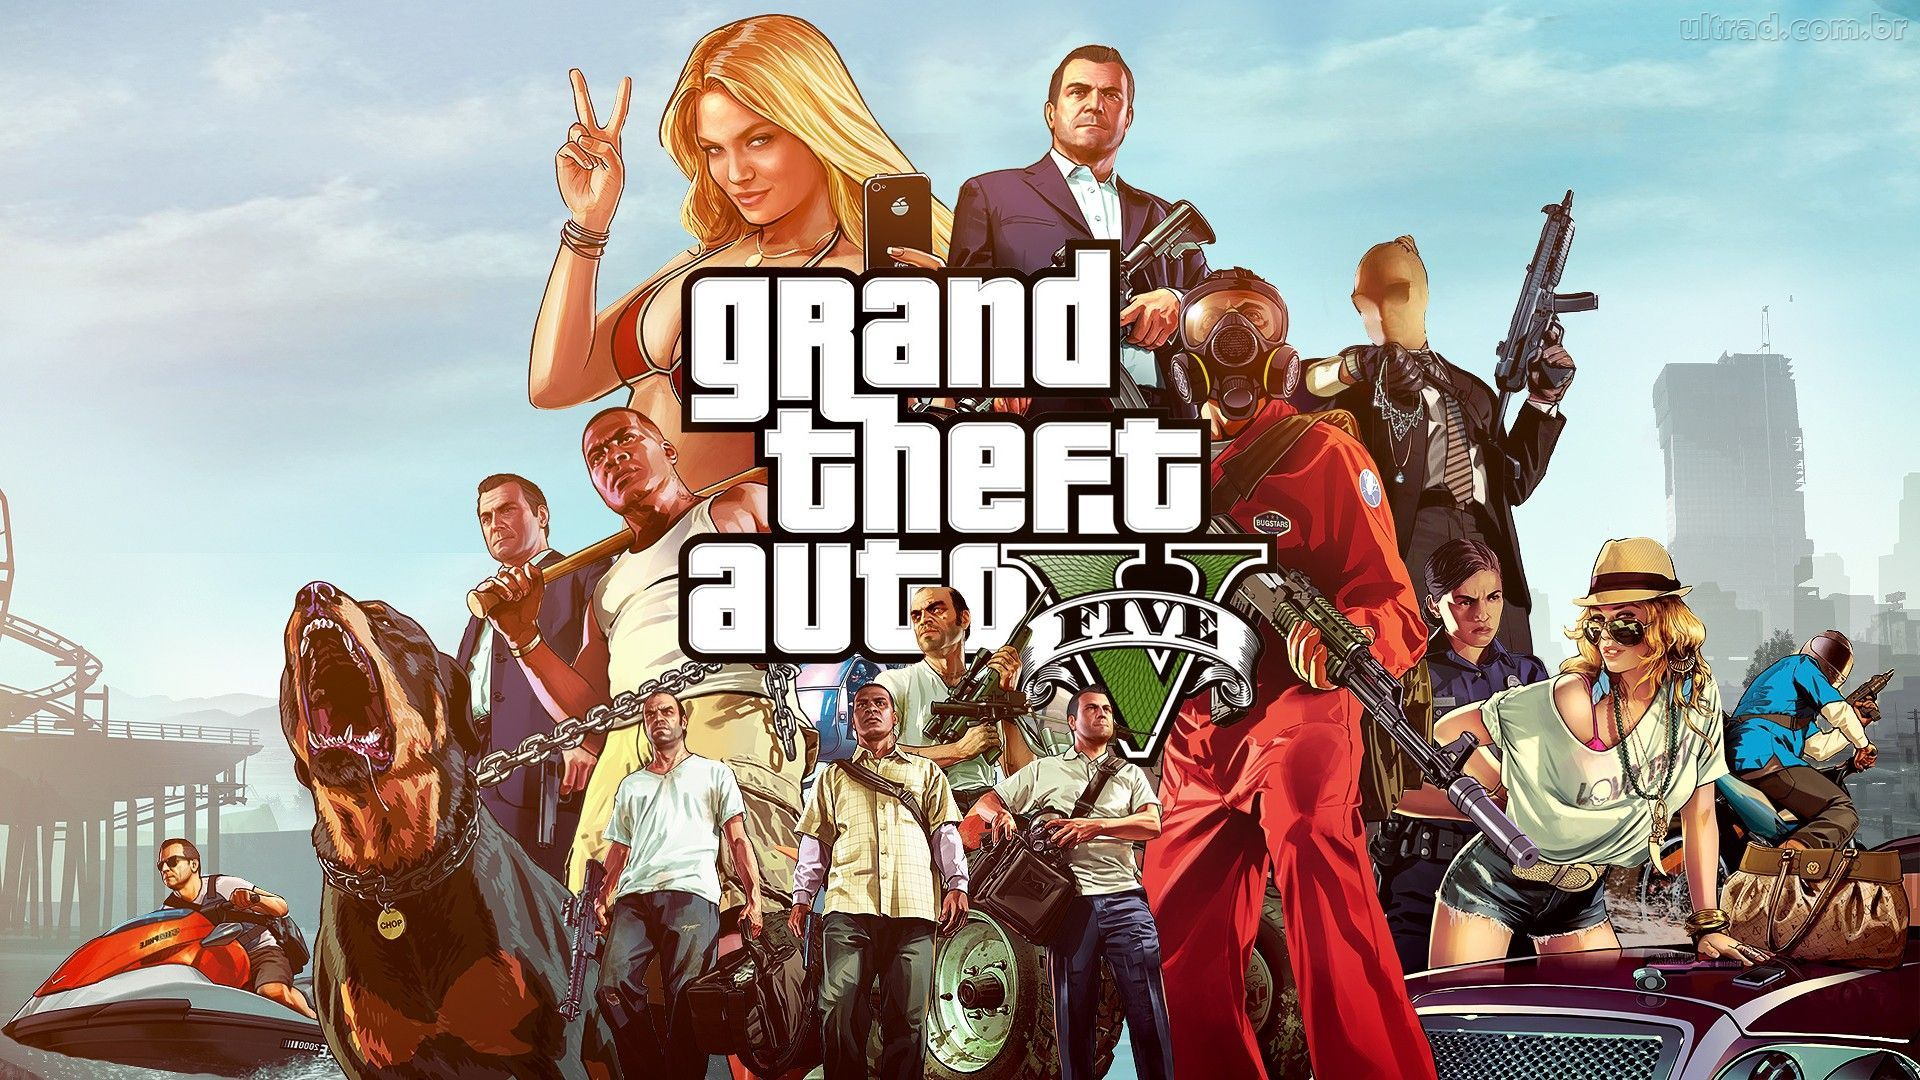 Google chrome theme gta v - The Craziest Things Ever Done In Grand Theft Auto V You Can Do A Lot Of Mad Things In Grand Theft Auto V But These Are Pretty Much The Most Insane